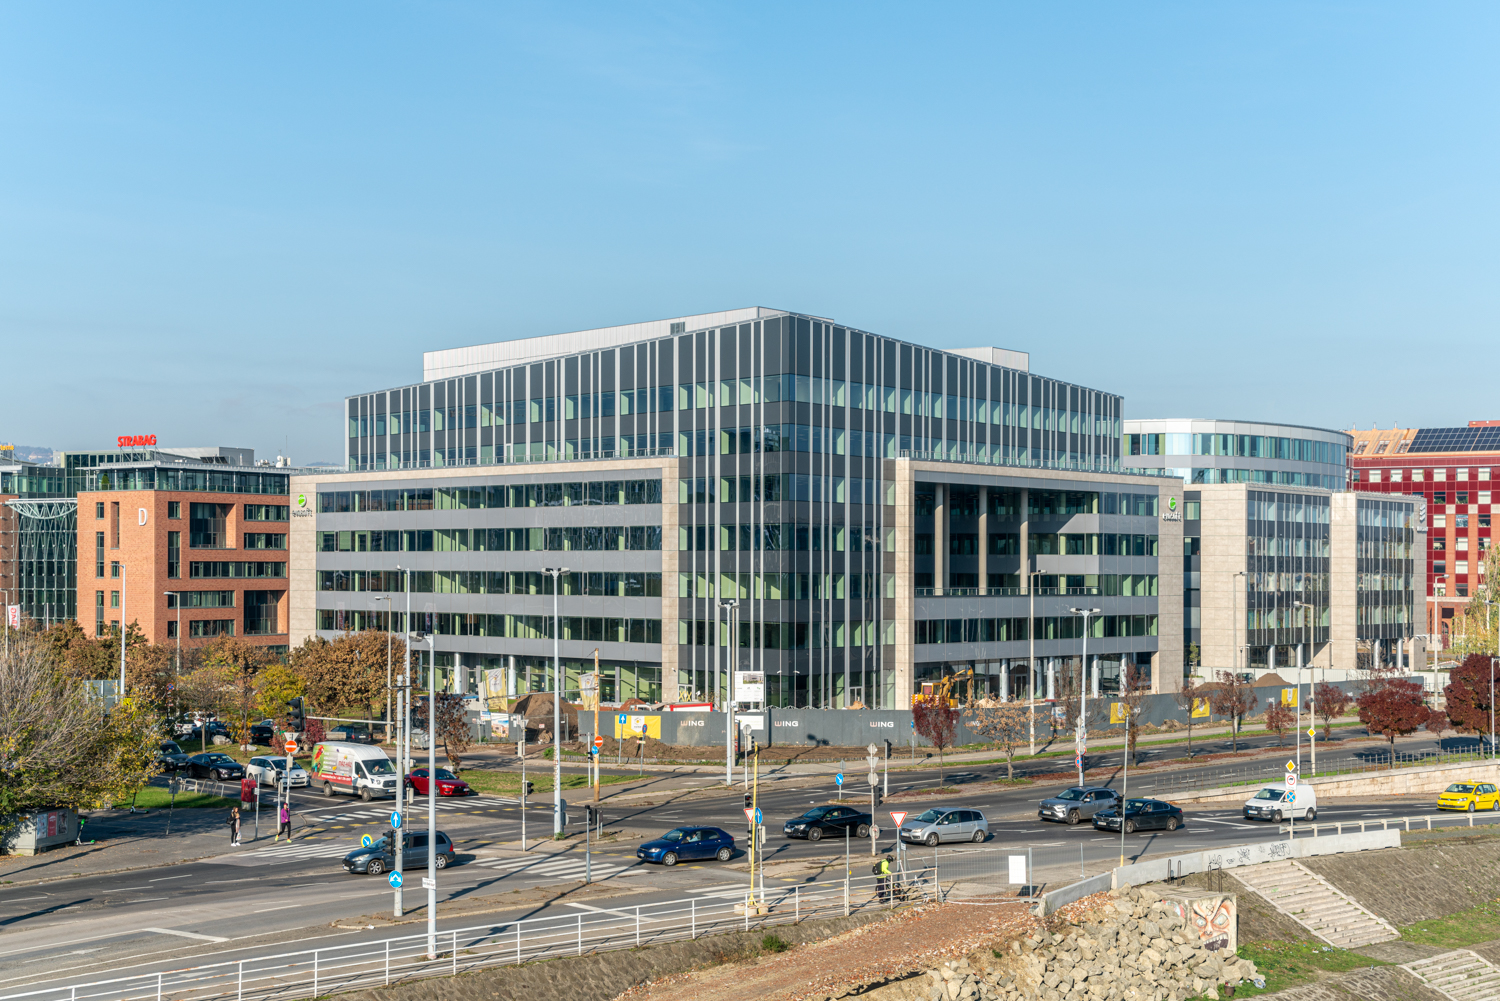 WING selling two office buildings to GTC